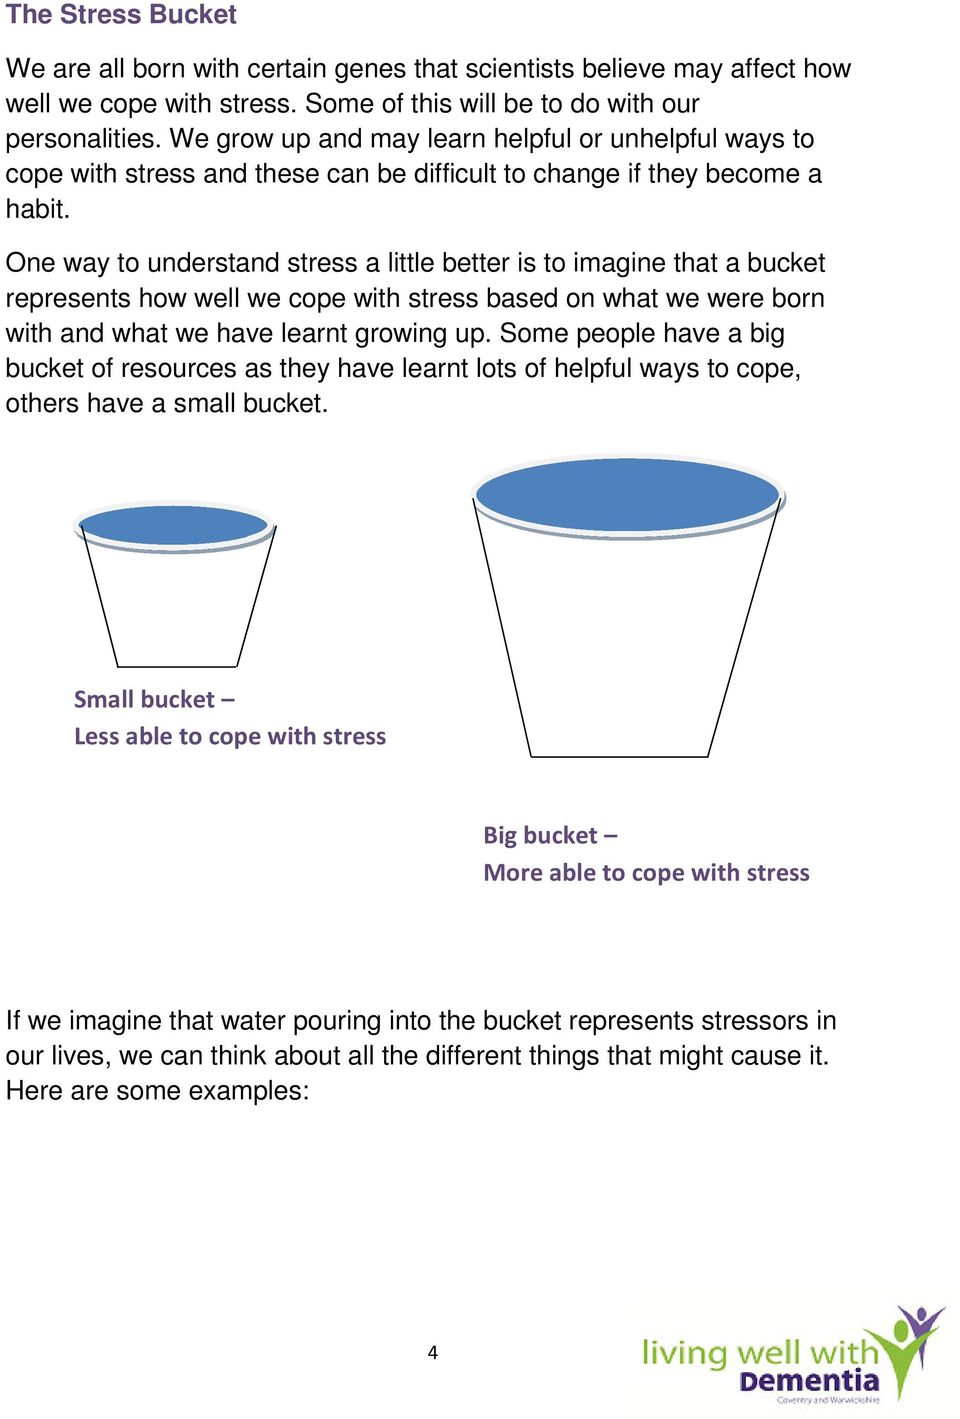 One way to understand stress a little better is to imagine that a bucket represents how well we cope with stress based on what we were born with and what we have learnt growing up.